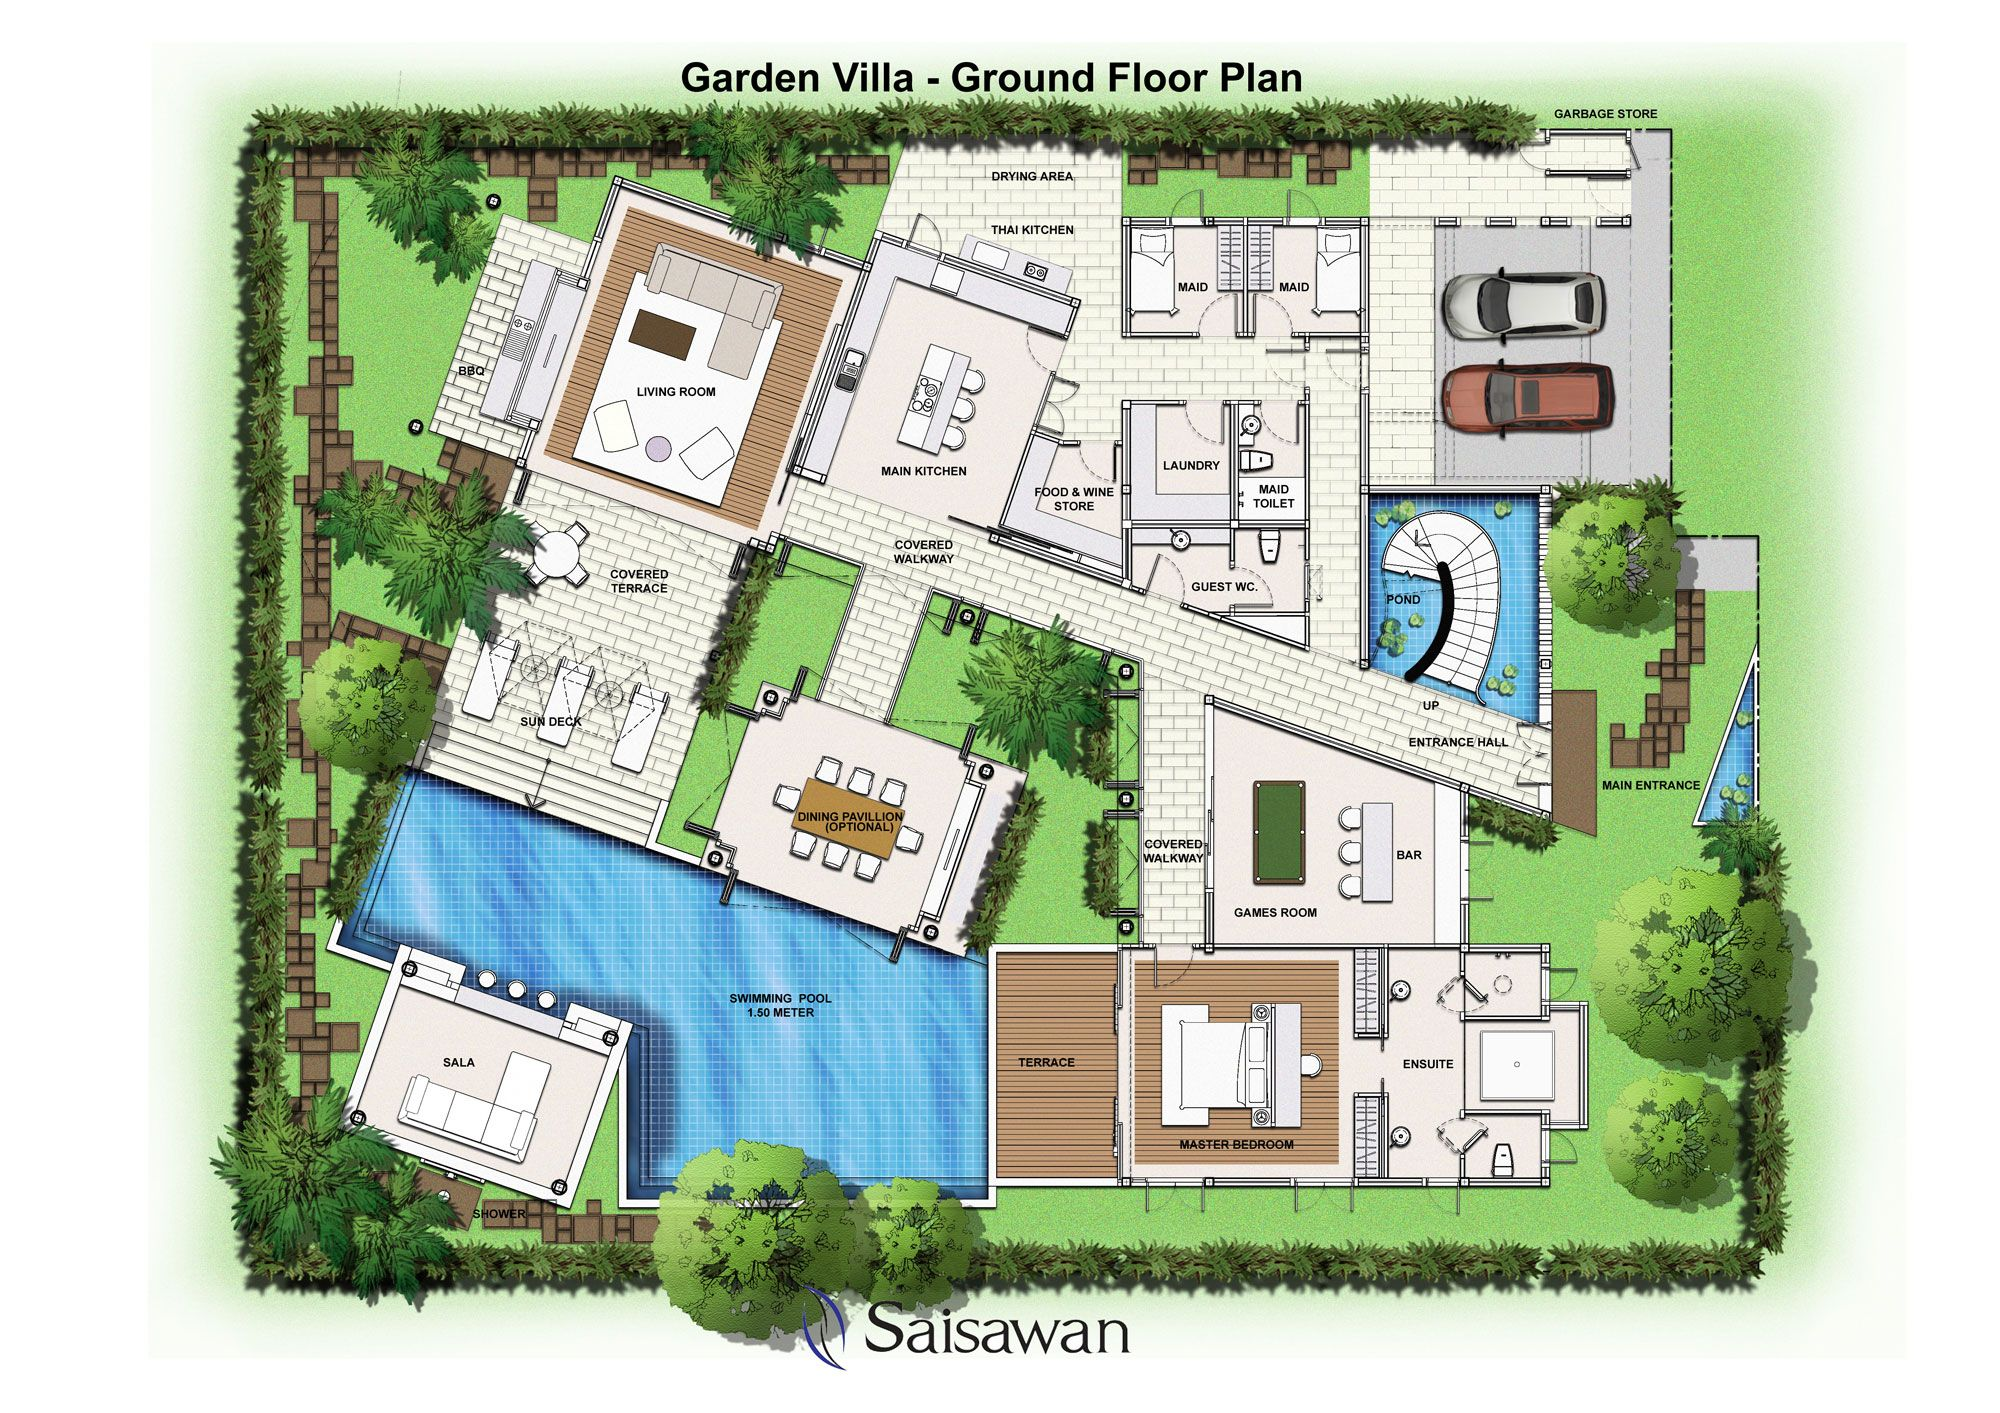 Saisawan garden villas ground floor plan house plans for Garden in house designs